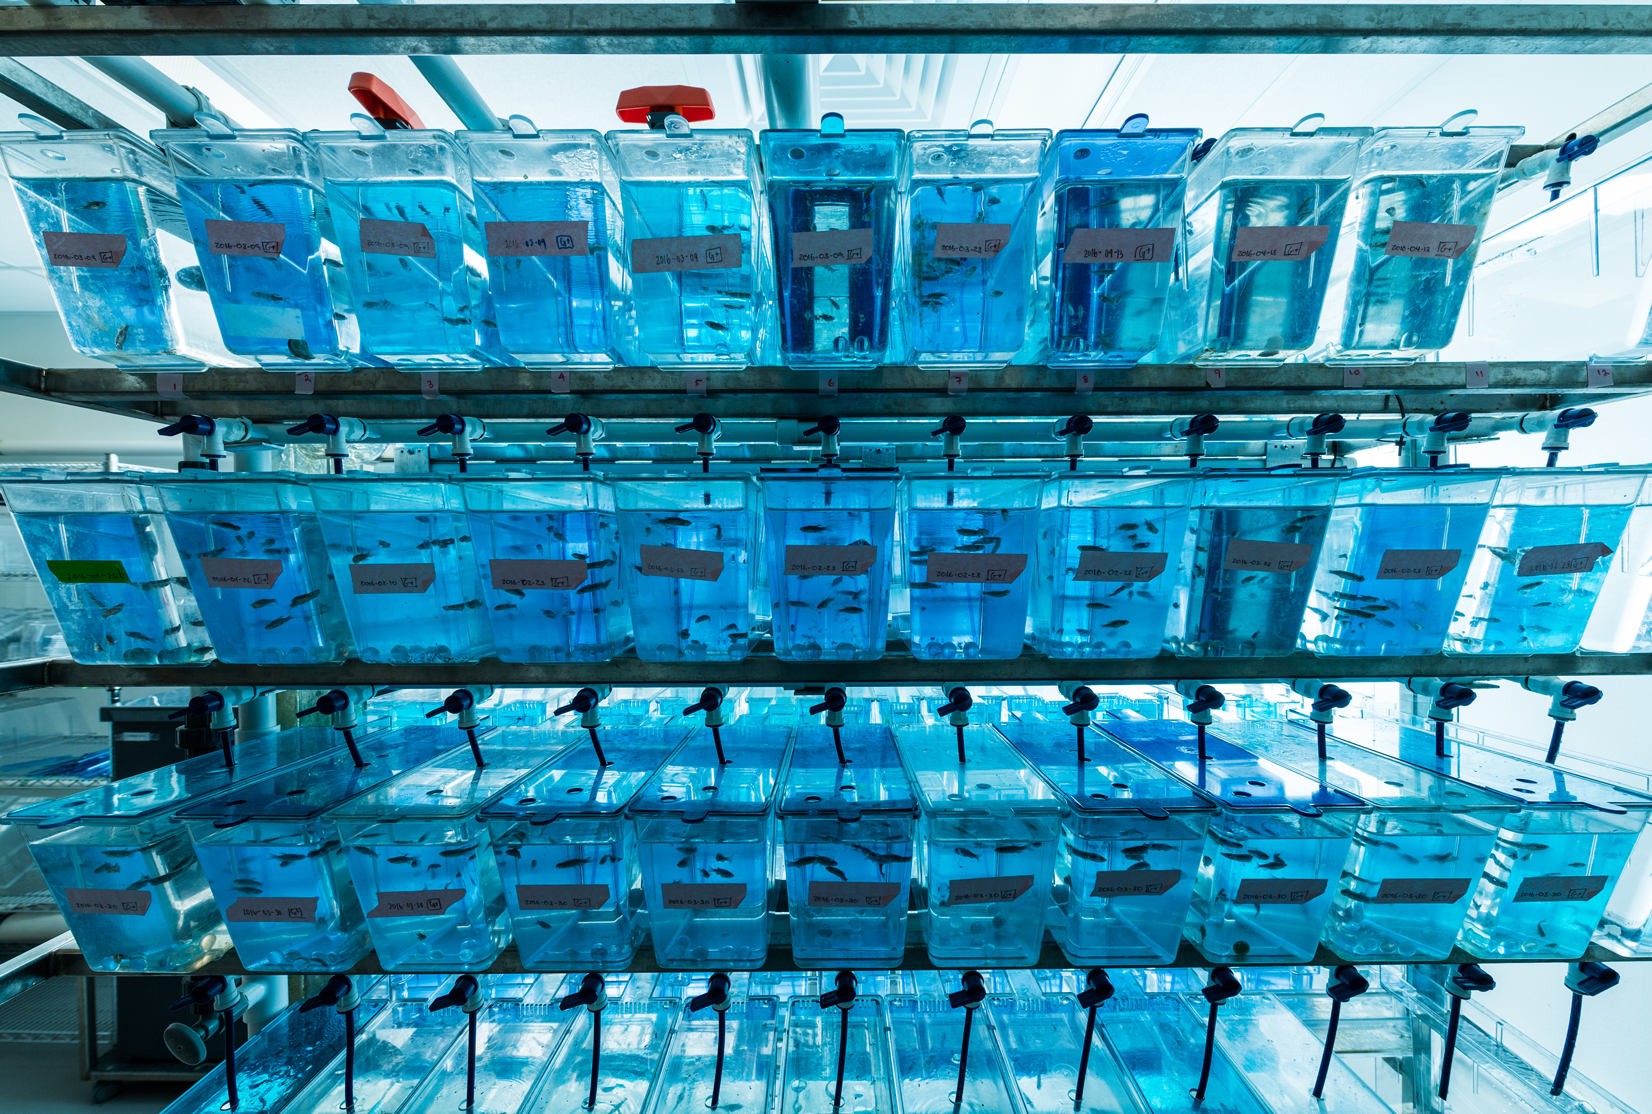 Zebrafish tanks in animal care facility